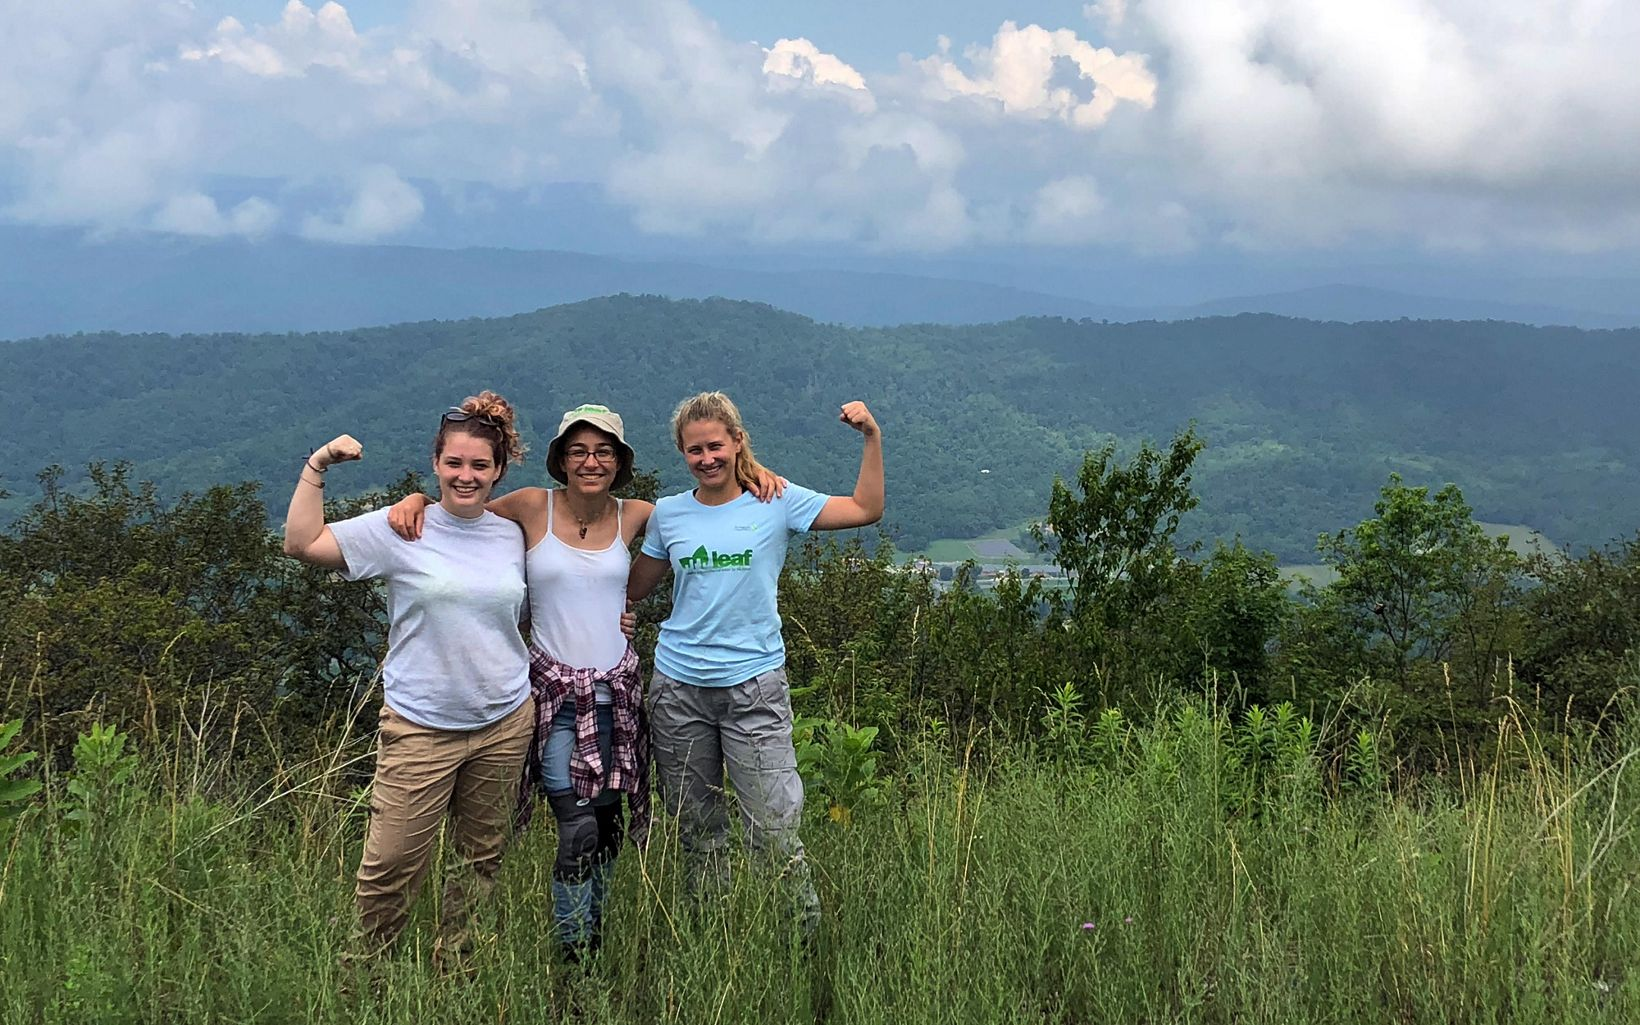 Three girls stand together arm in arm in tall grass. A valley drops away below them ending in a line of mountain ridges.